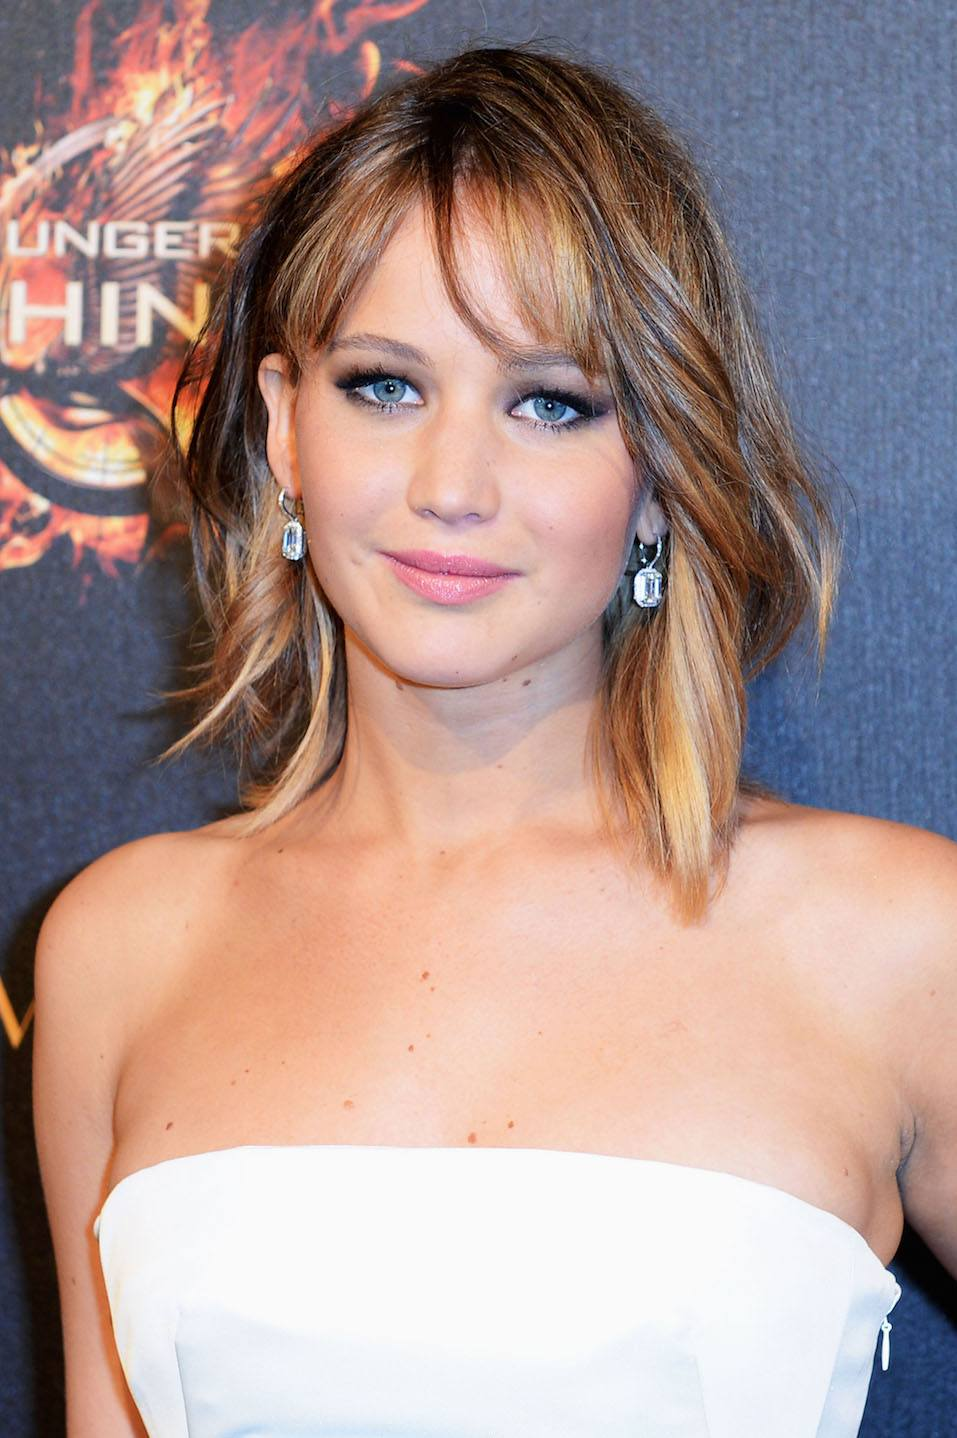 Actress Jennifer Lawrence attends 'The Hunger Games: Catching Fire' Party during The 66th Annual Cannes Film Festival